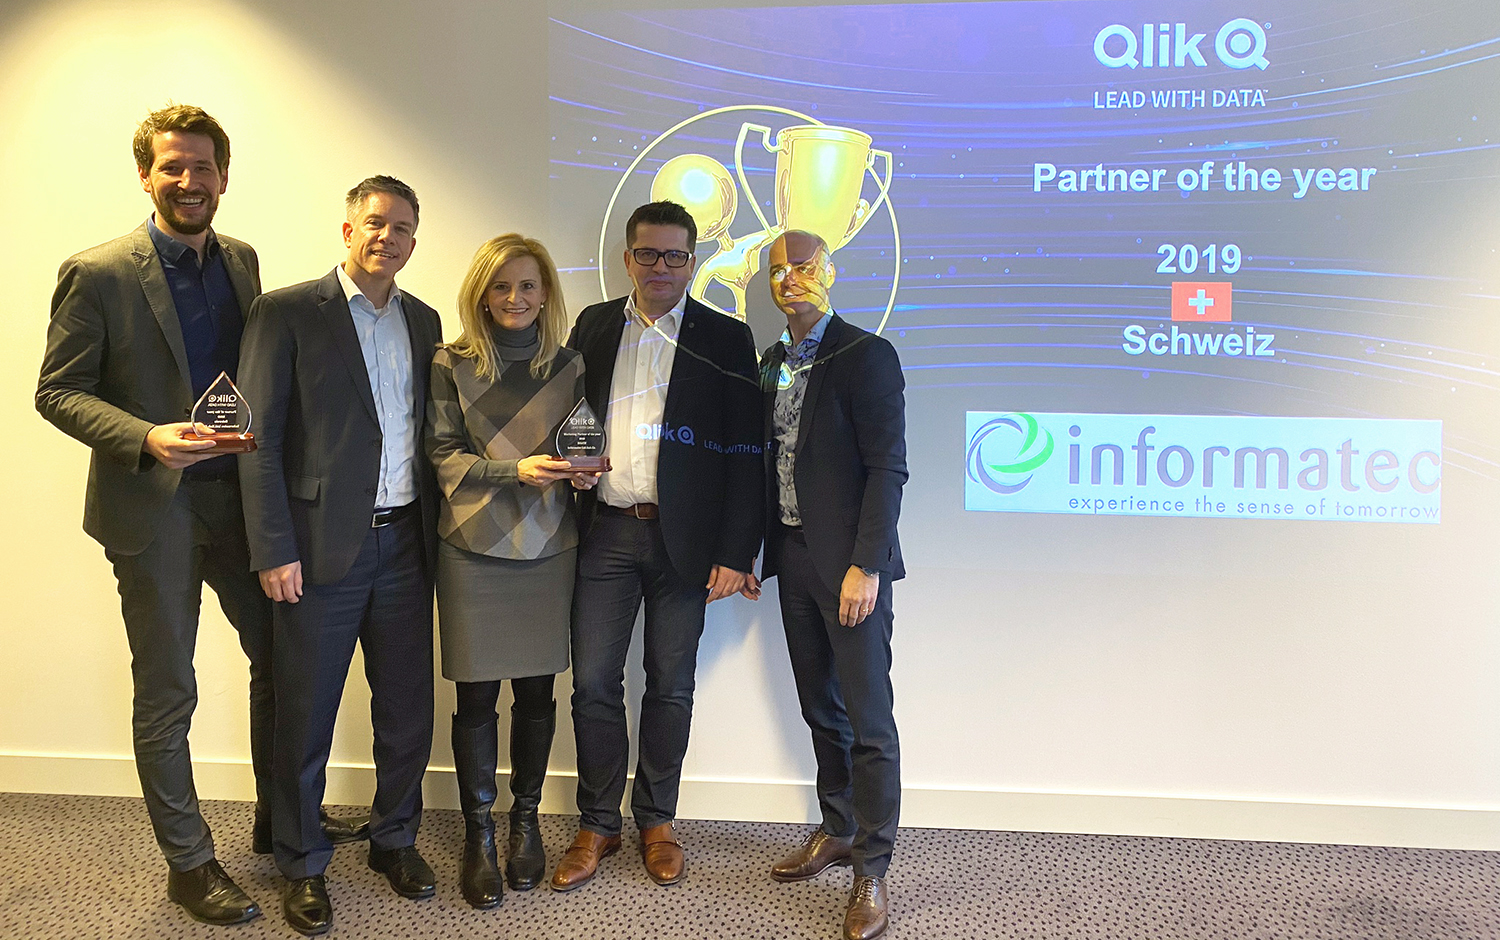 Informatec Qlik Partner of the Year 2019 Switzerland